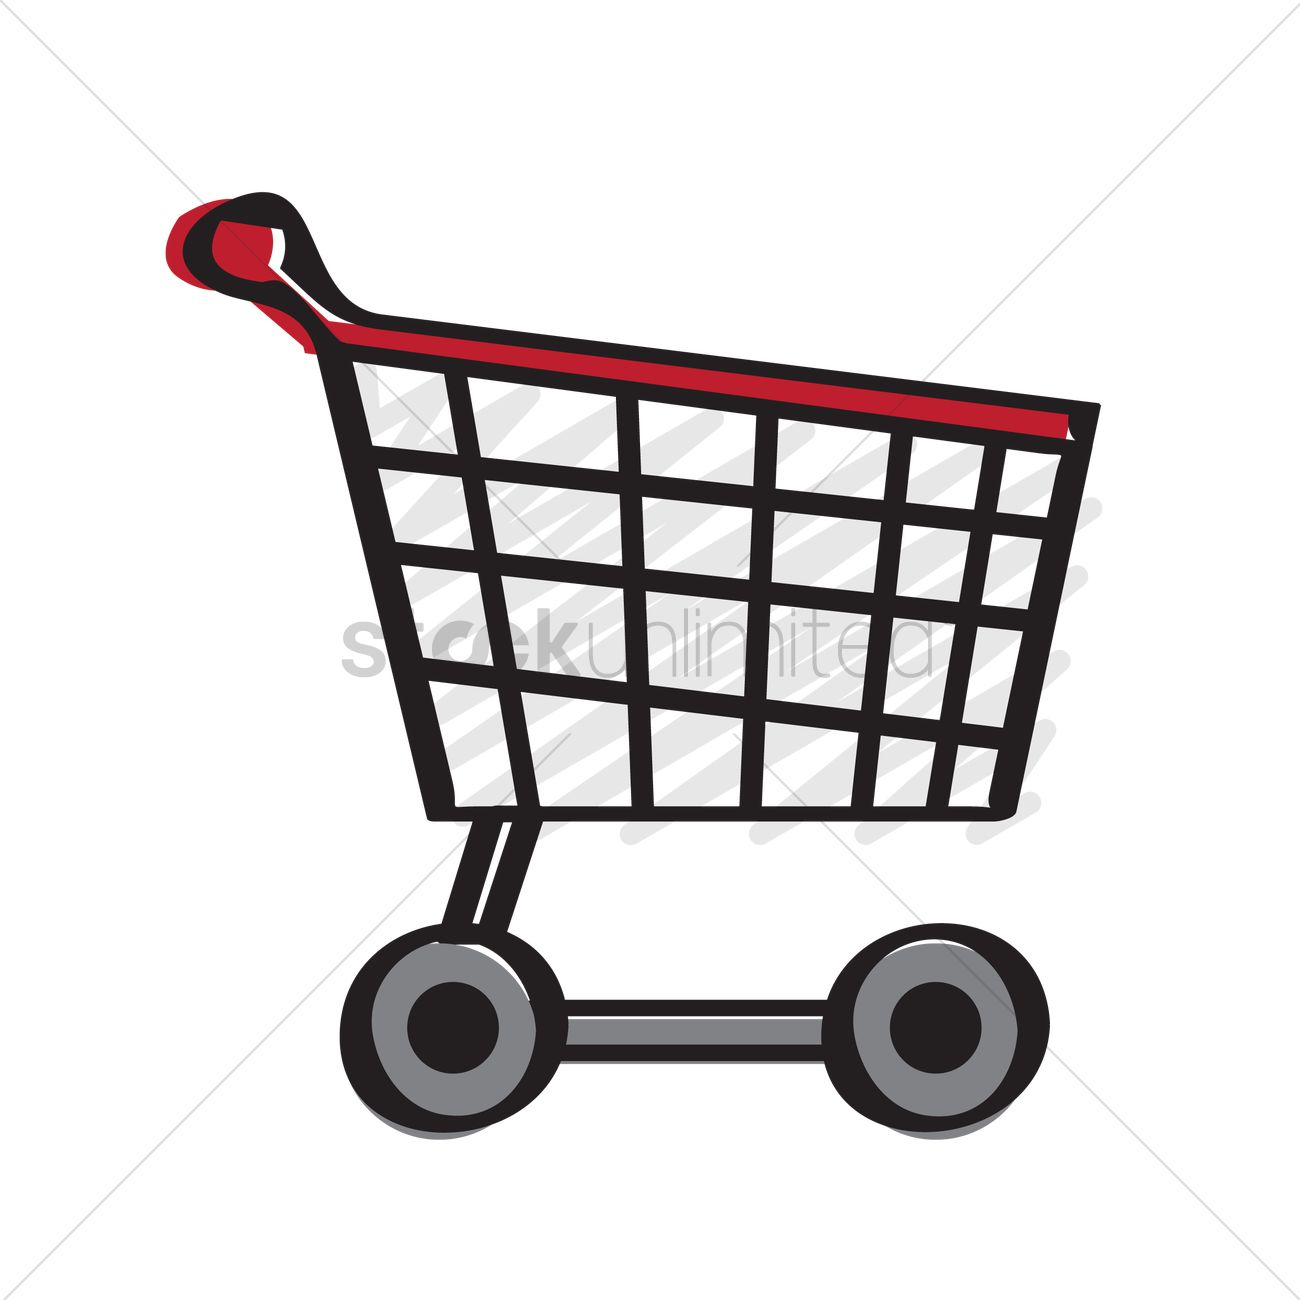 1300x1300 Illustration Of A Trolley Vector Image